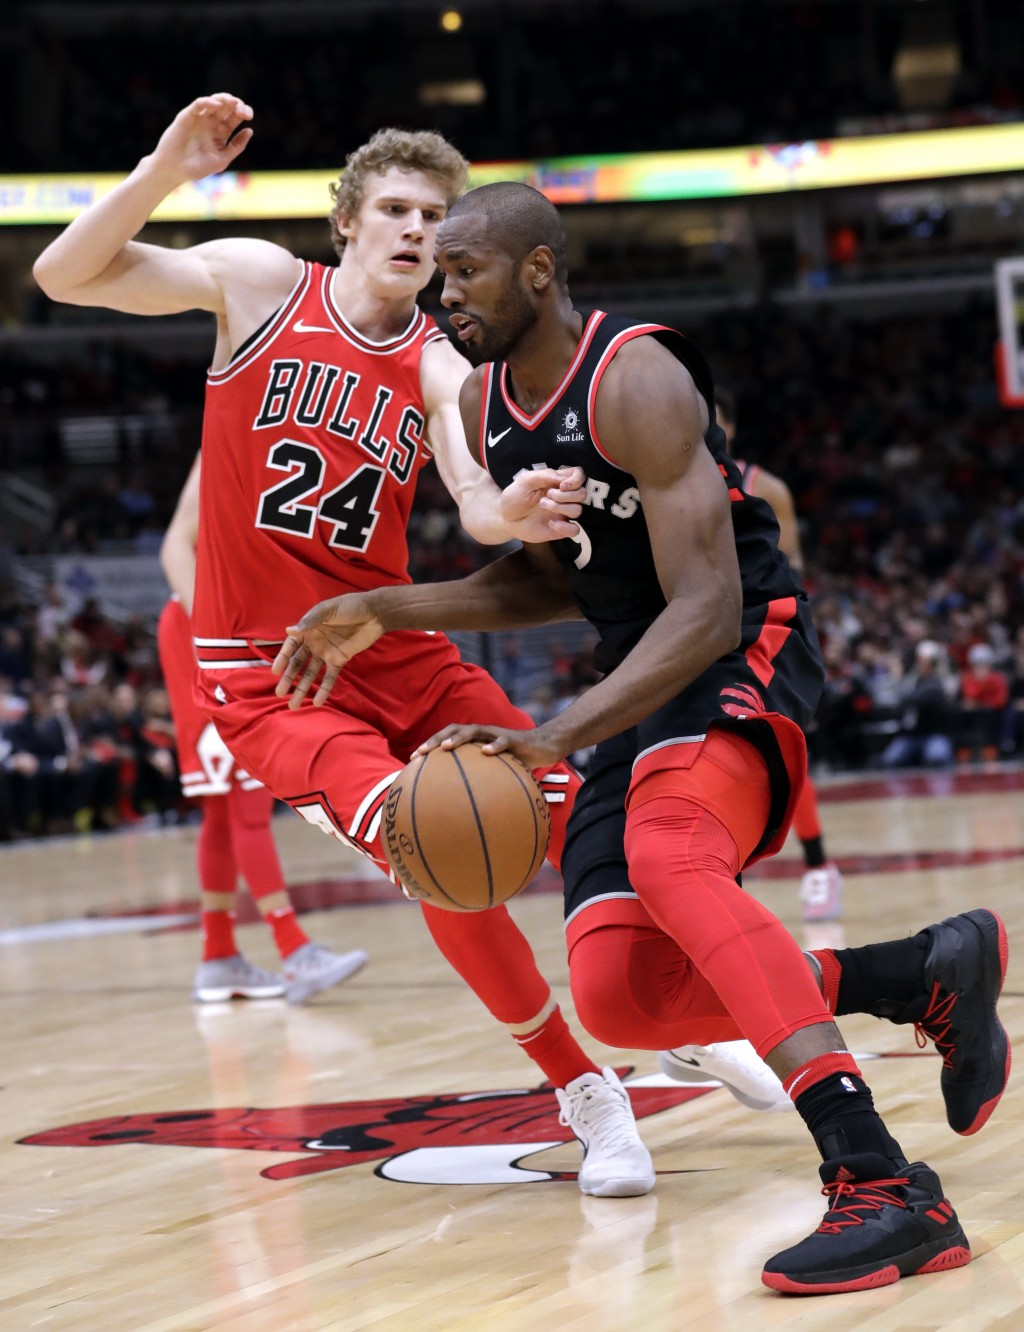 Toronto Raptors forward/center Serge Ibaka, right, drives against Chicago Bulls forward Lauri Markkanen during the first half of an NBA basketball gam